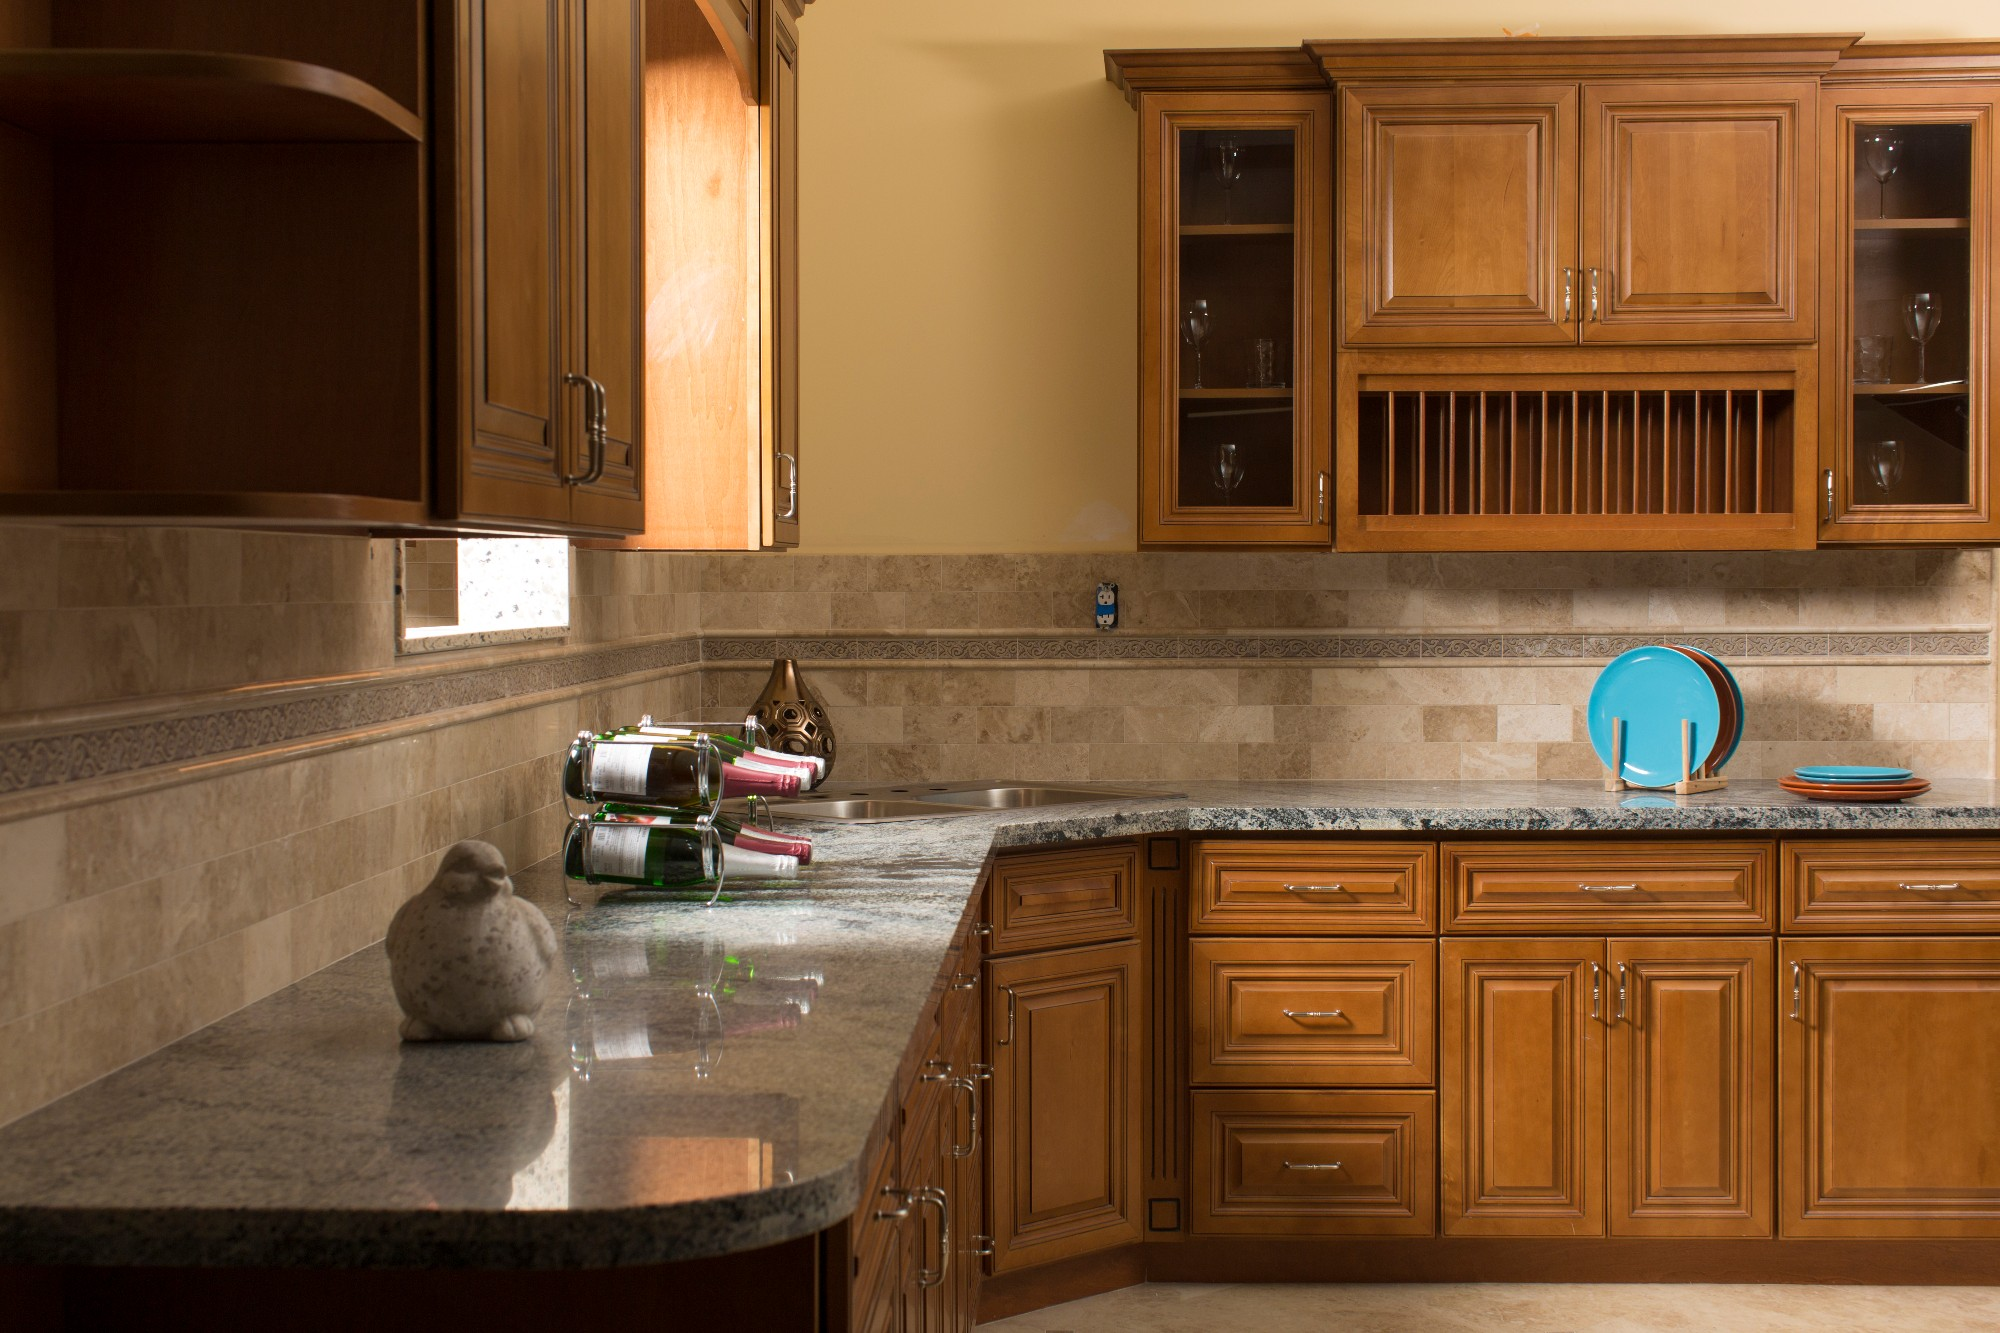 Coffee Glaze Solidwood Kitchen Cabinet Manufacturers, Coffee Glaze Solidwood Kitchen Cabinet Factory, Supply Coffee Glaze Solidwood Kitchen Cabinet